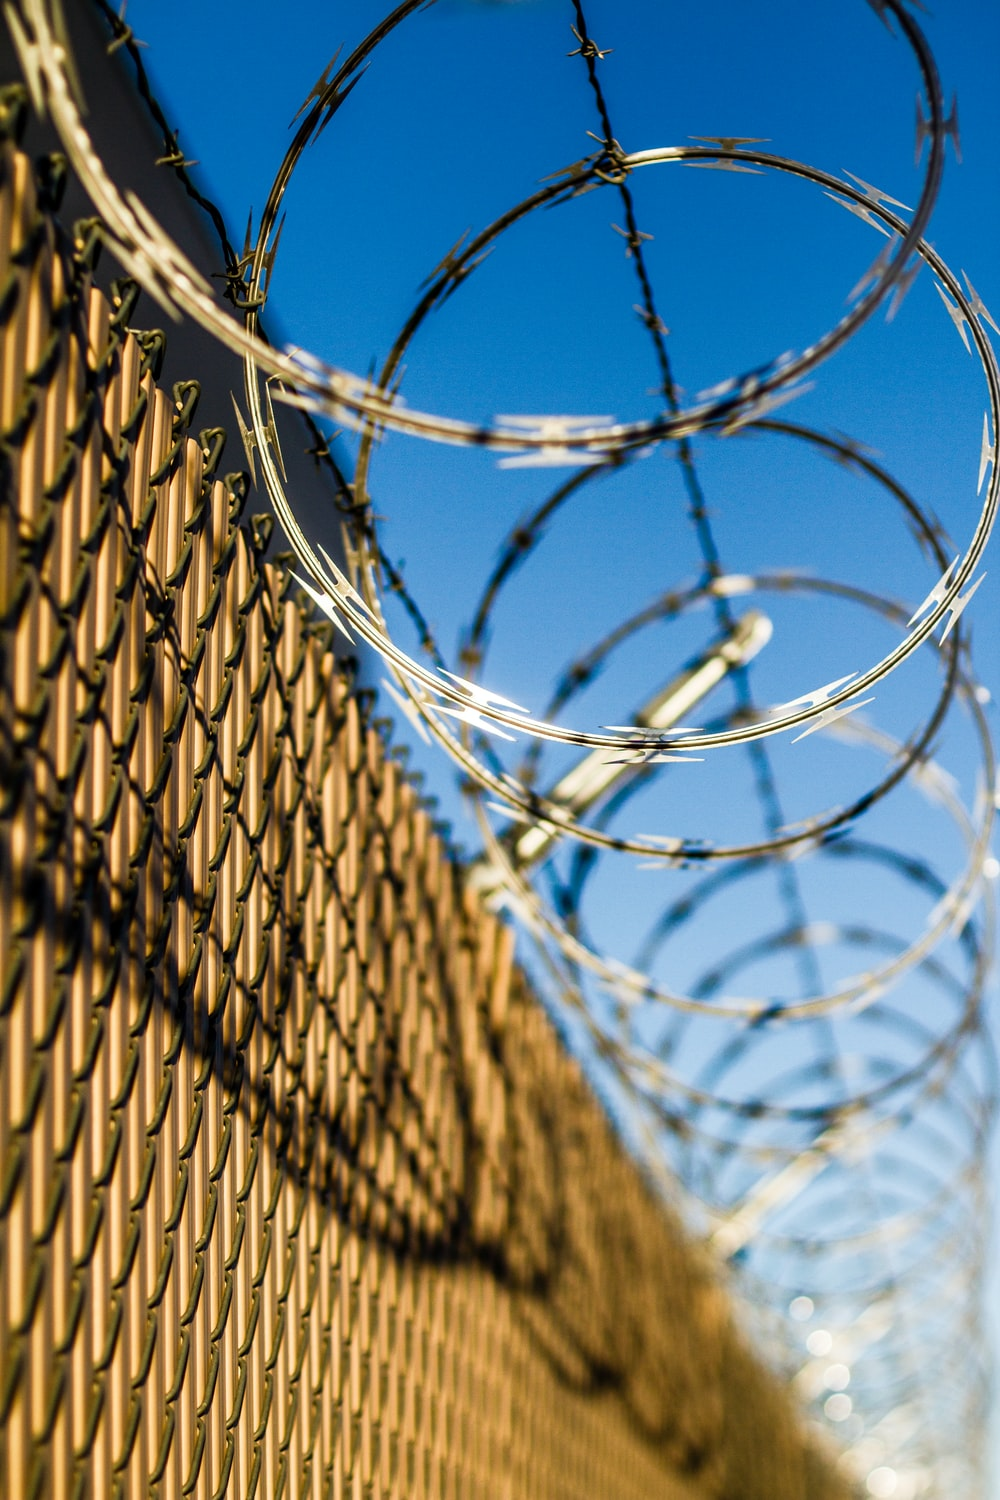 stainless steel barbwire